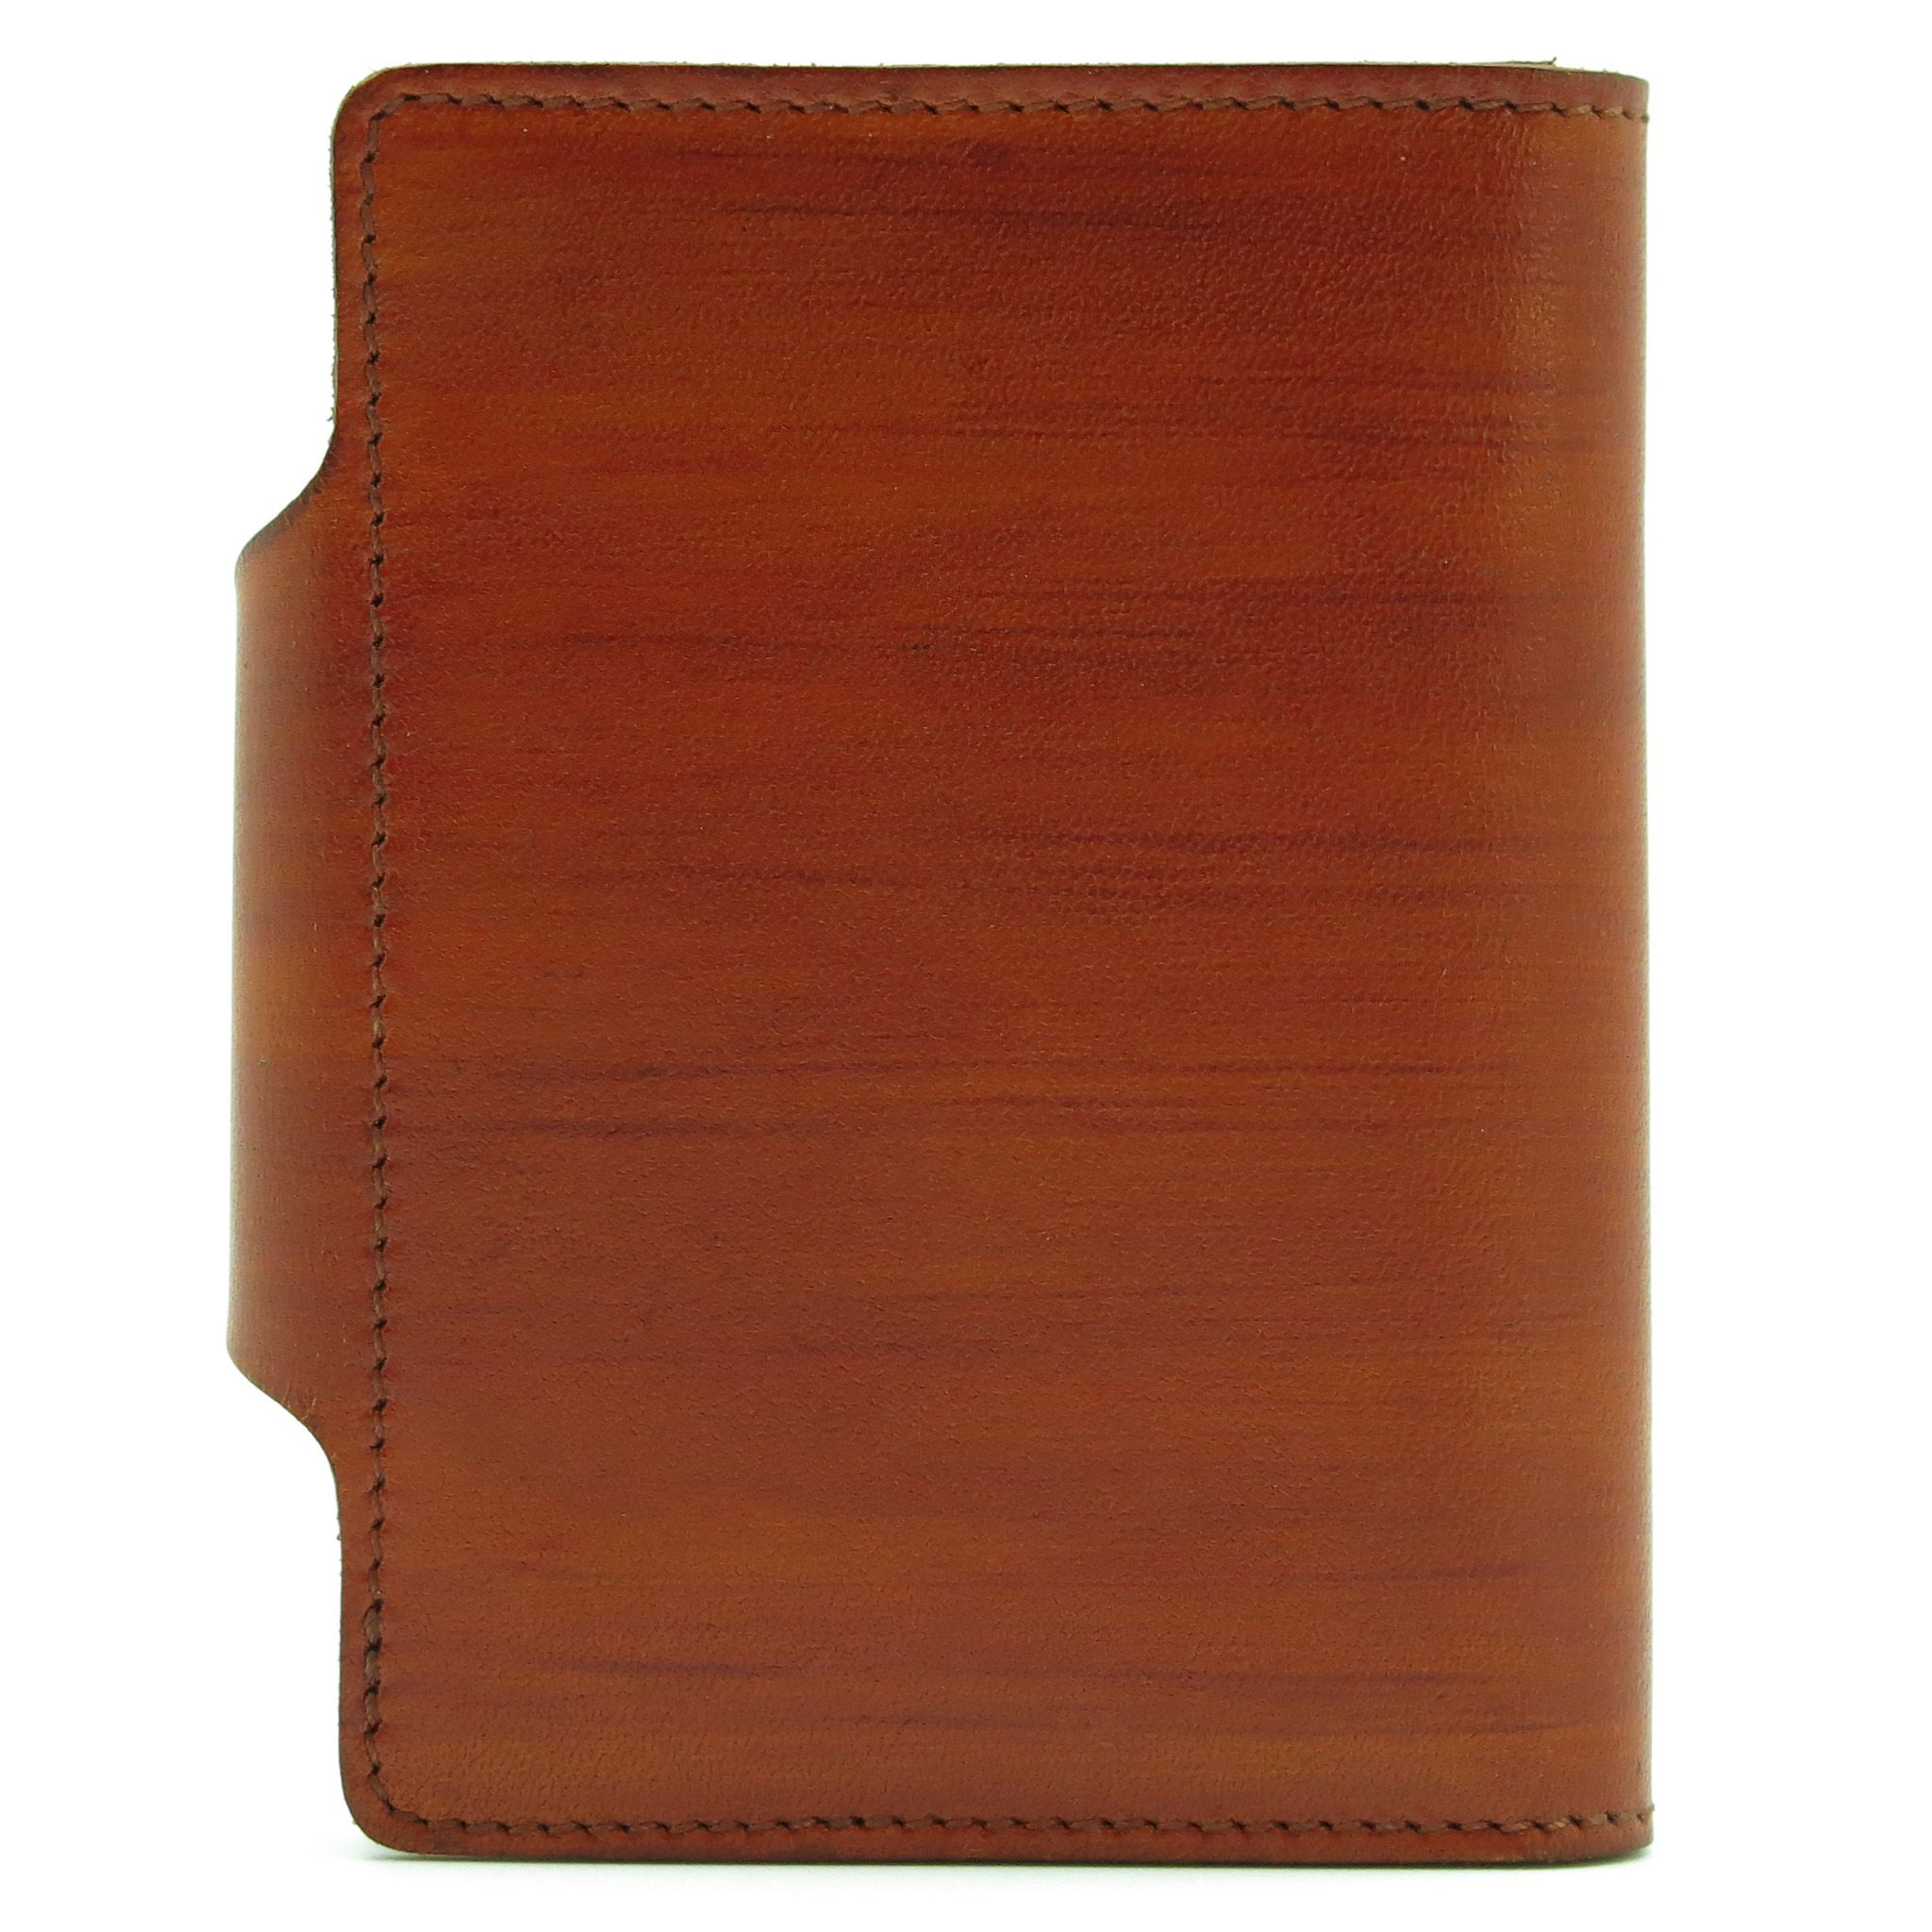 accessories leather orange handmade cardholder